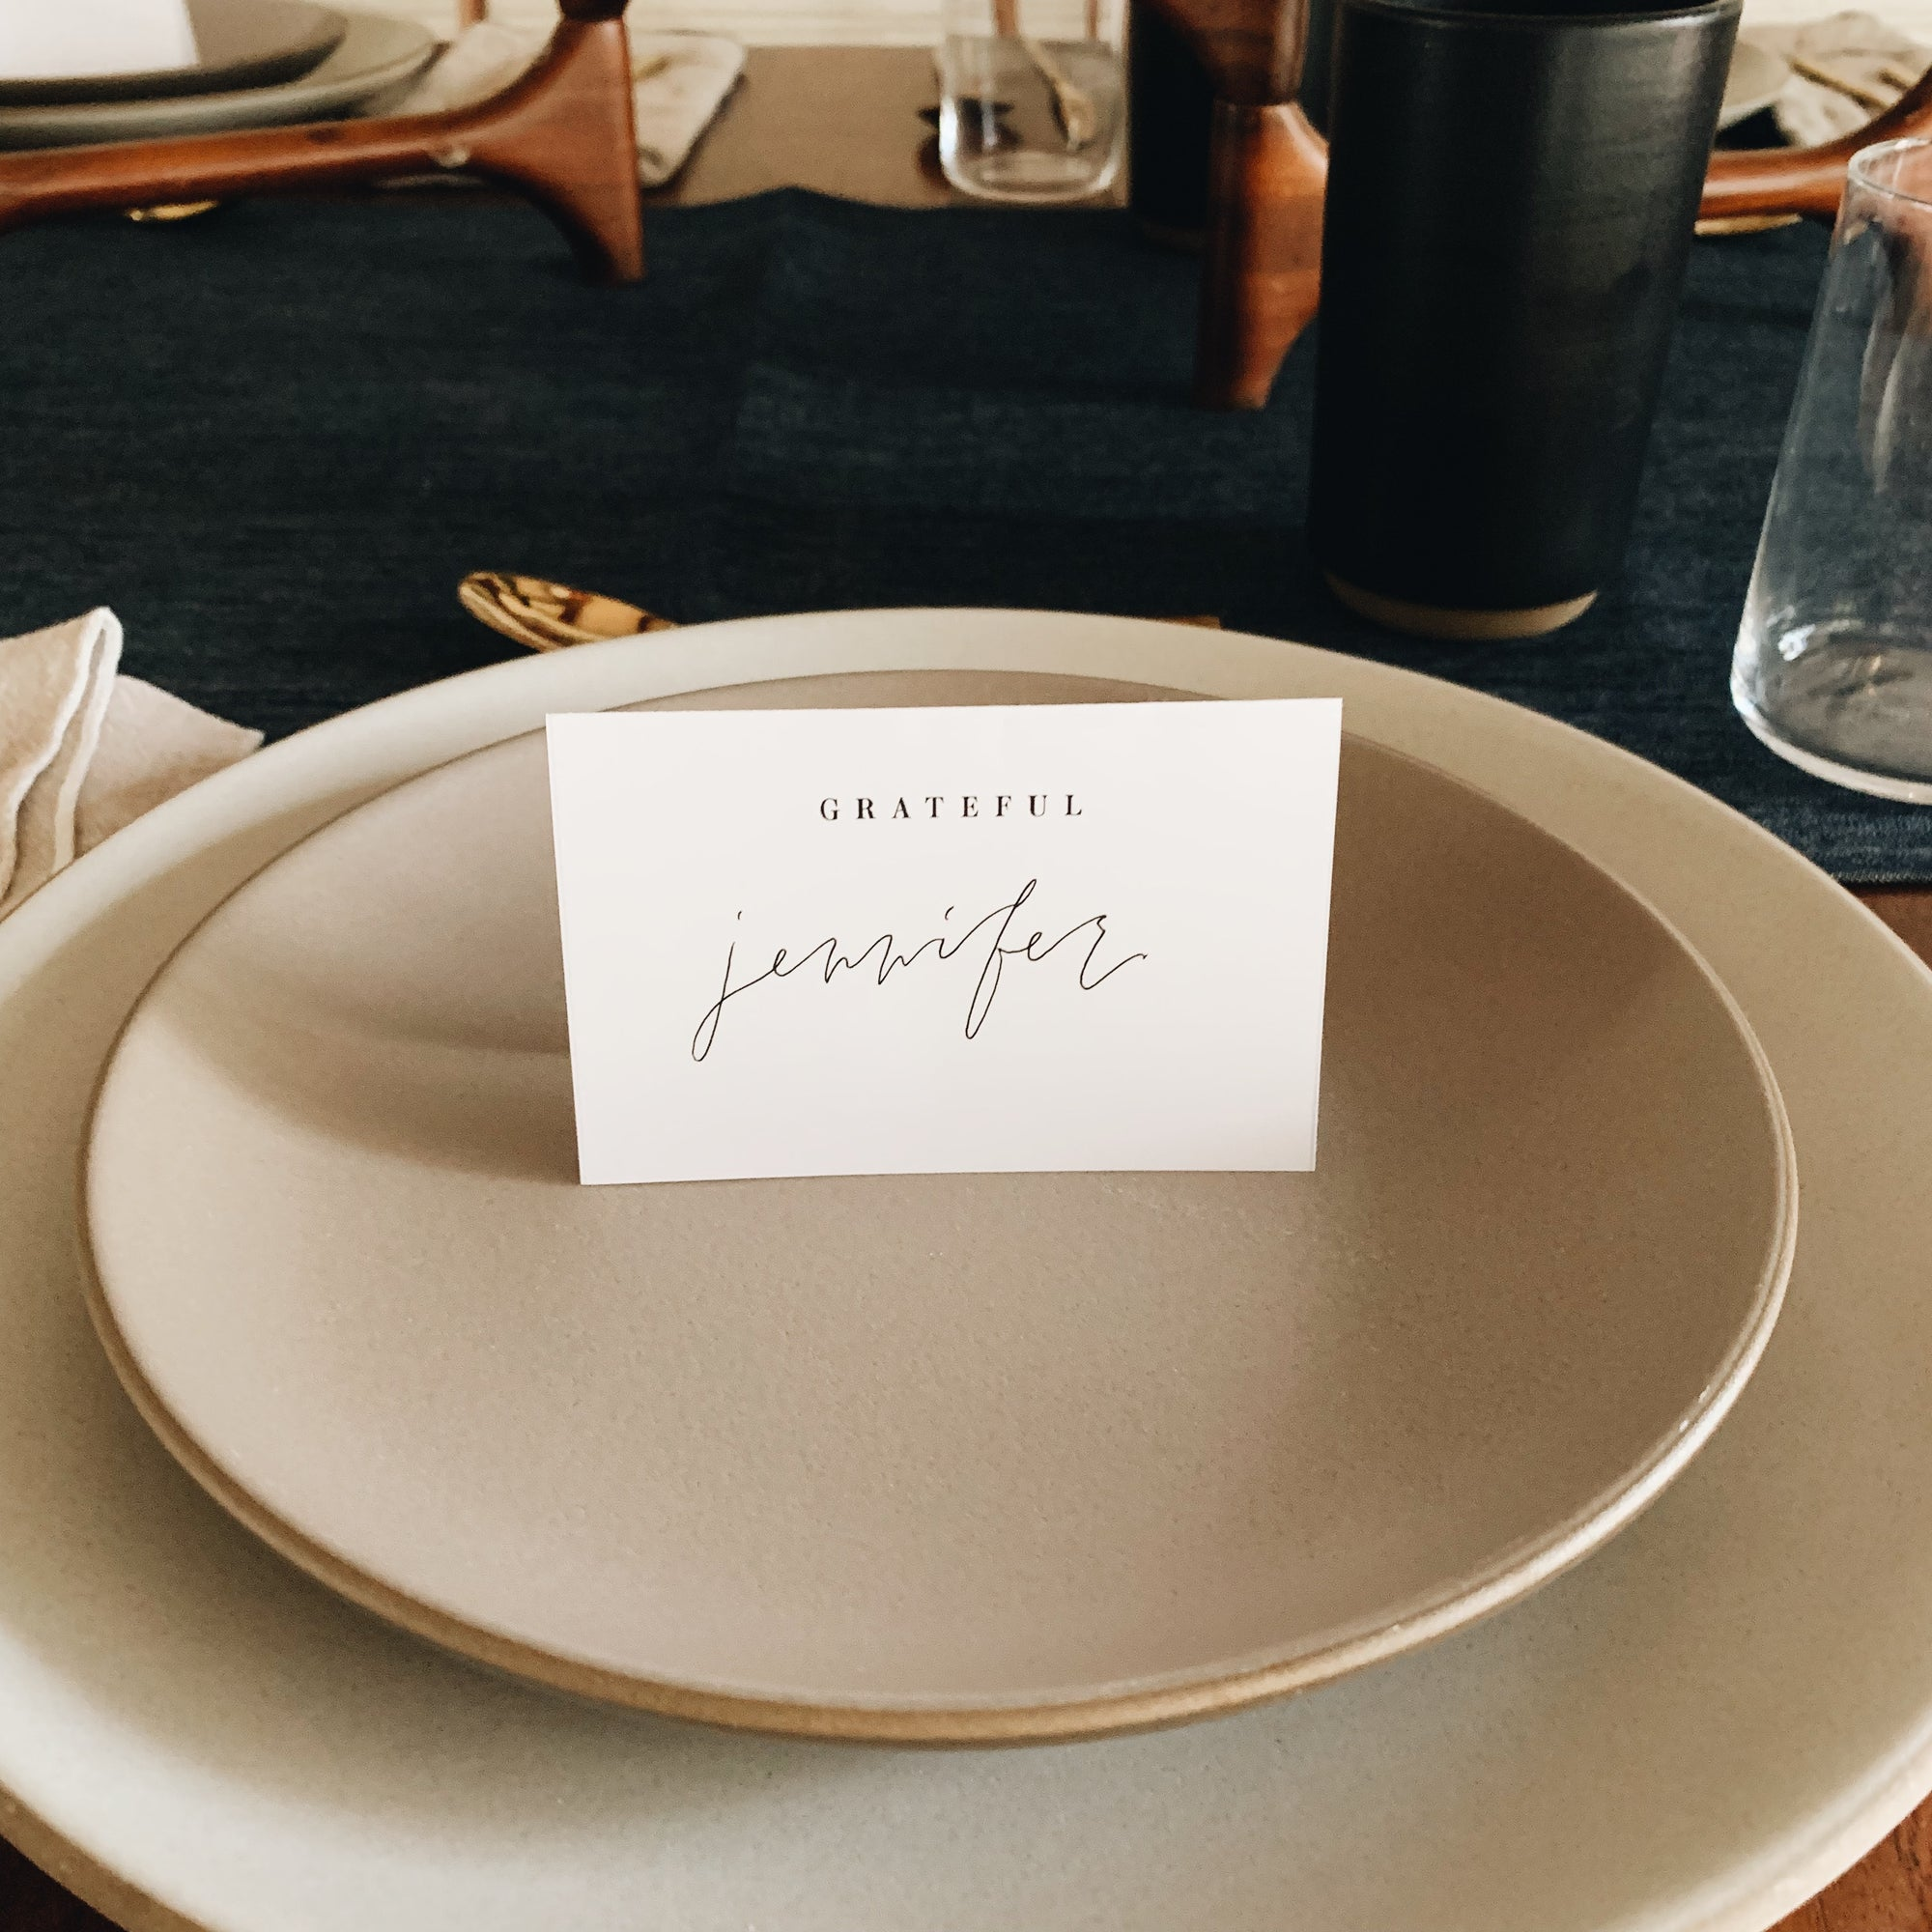 Free Downloadable Place Cards + Food Tents